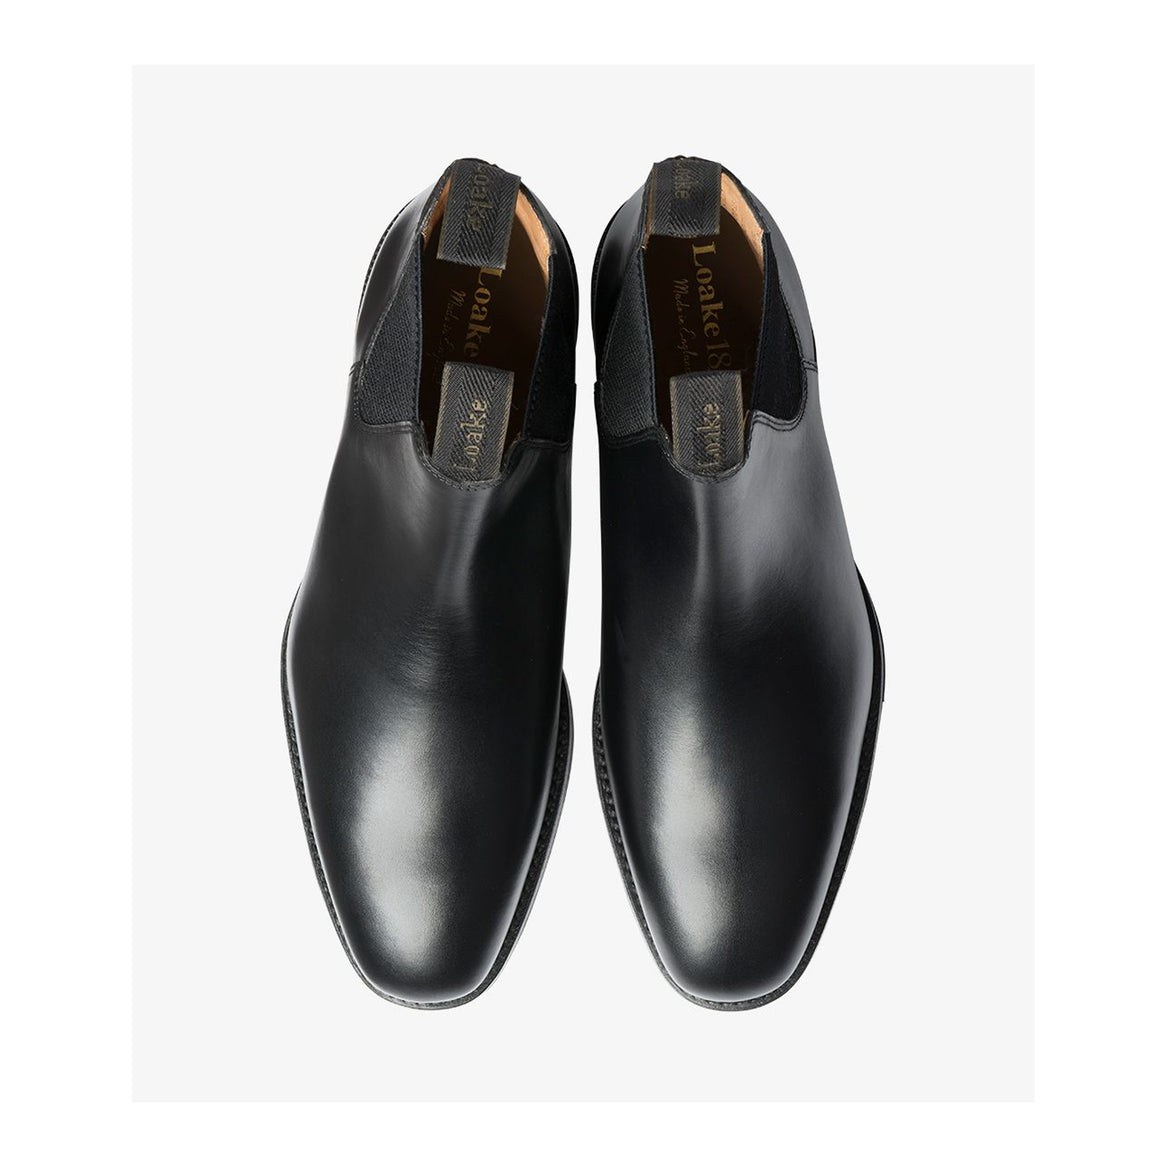 Chatsworth Dainight Shoe for Men in Black